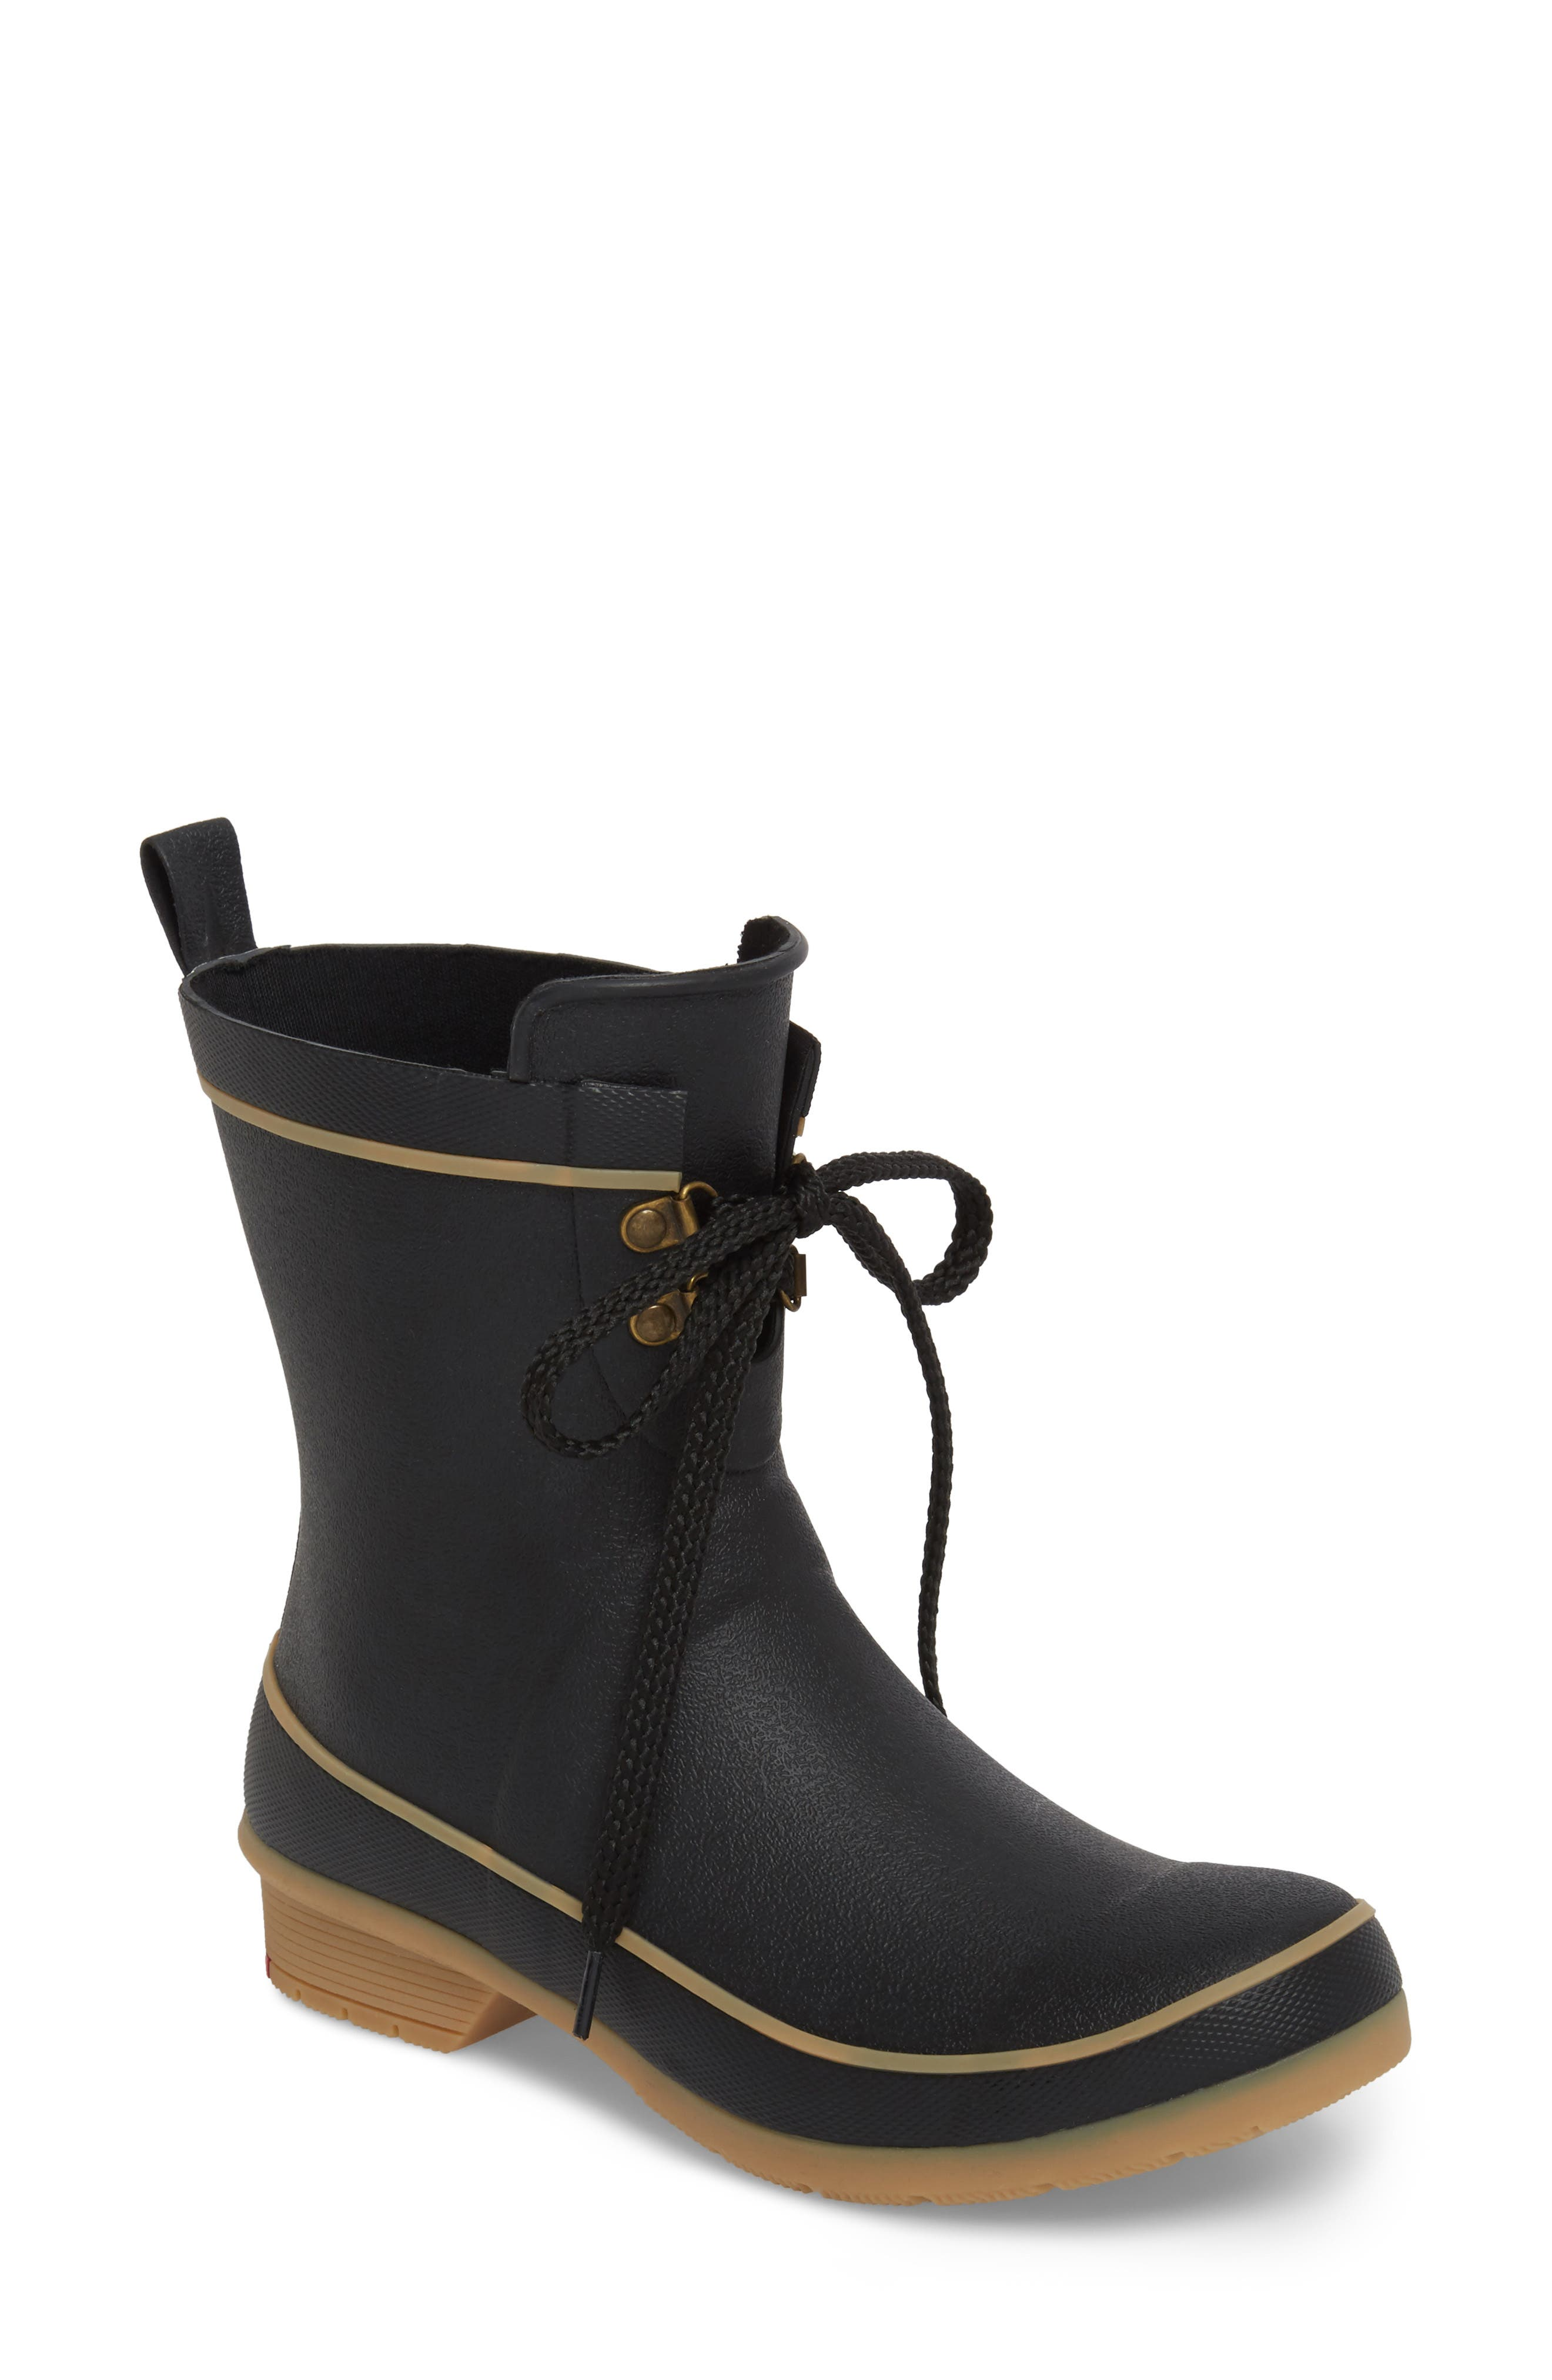 Whidbey Rain Boot,                         Main,                         color, BLACK